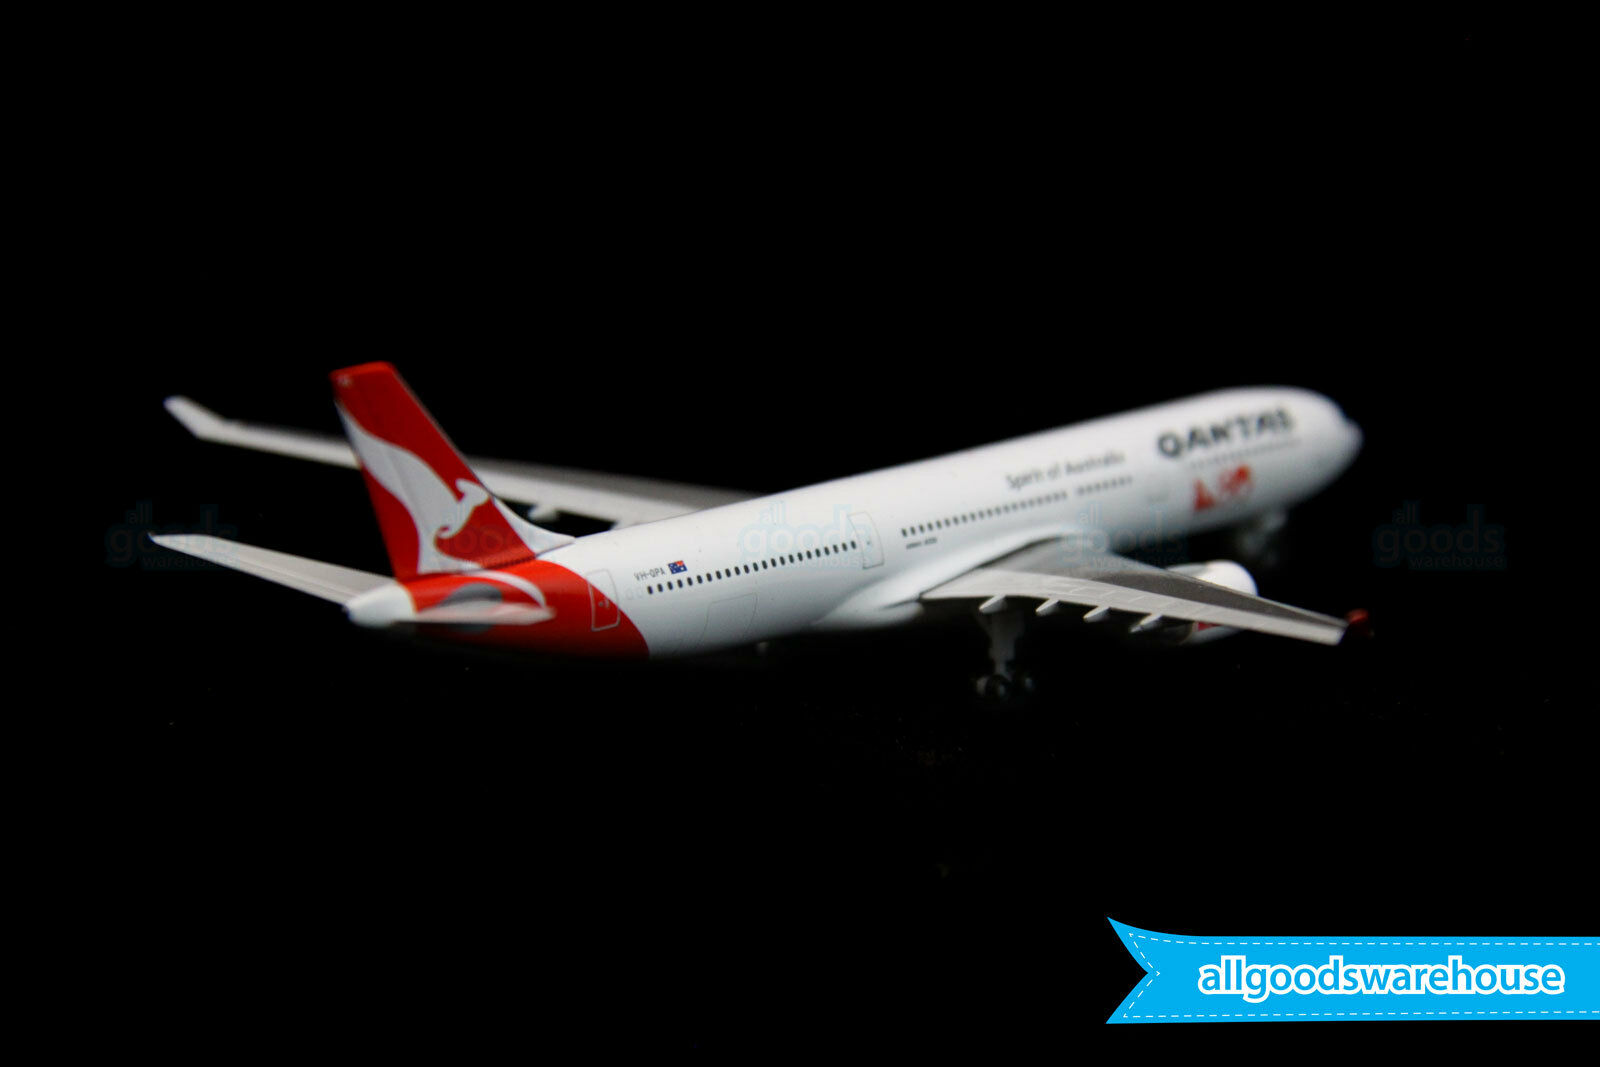 Qantas Airbus A330-300 VH-QPA 1 500 scale die-cast model replica A300 aircraft